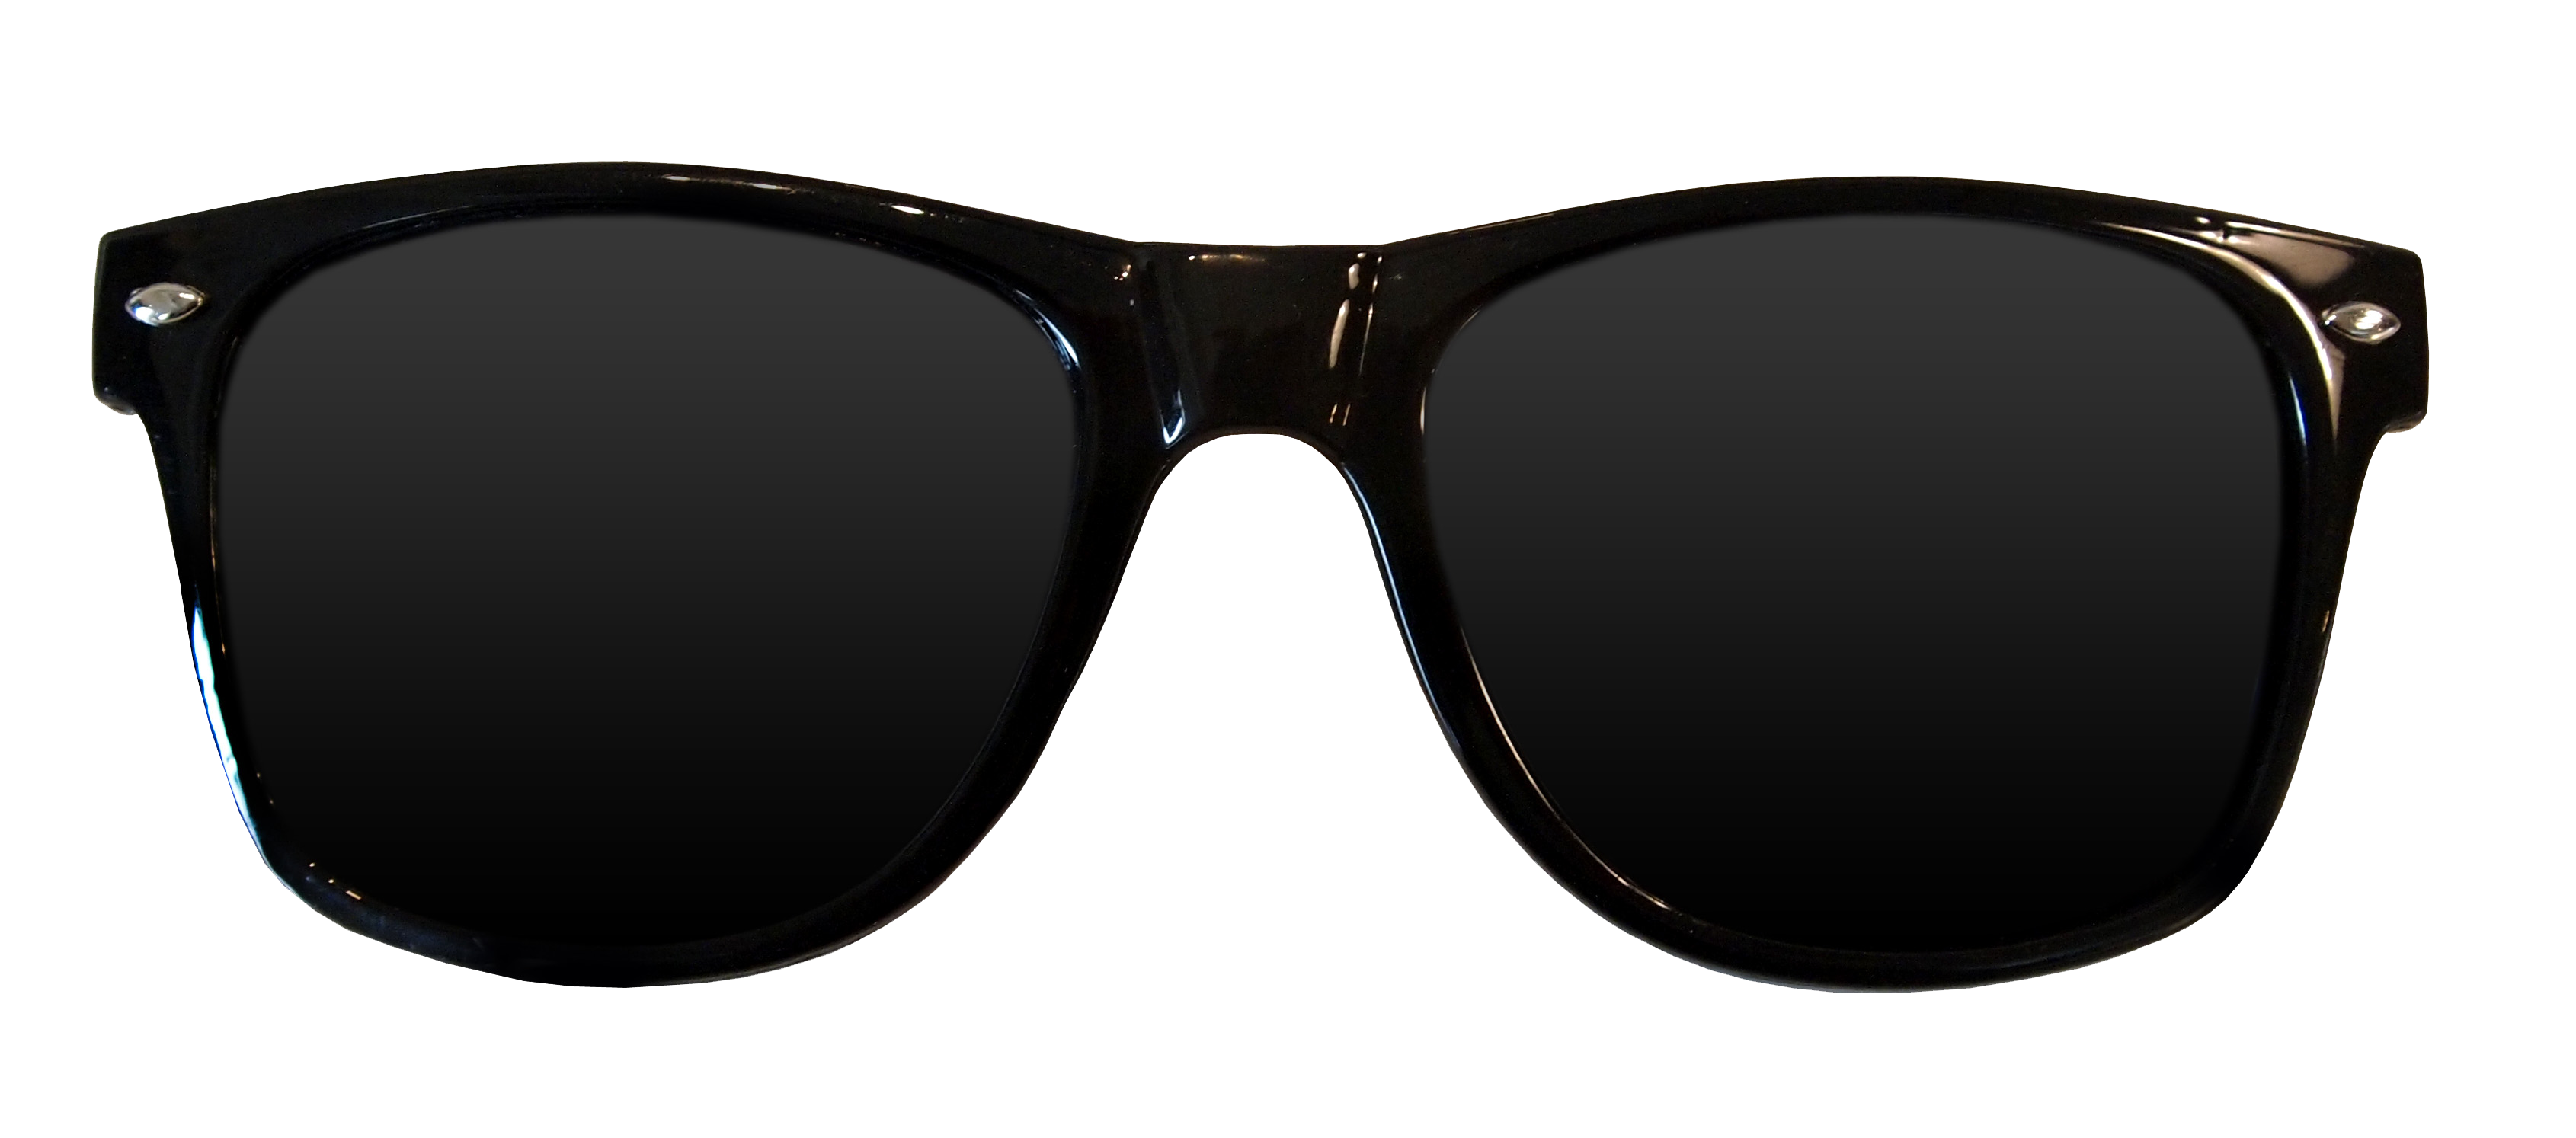 PNG HD Sun With Sunglasses - 152712